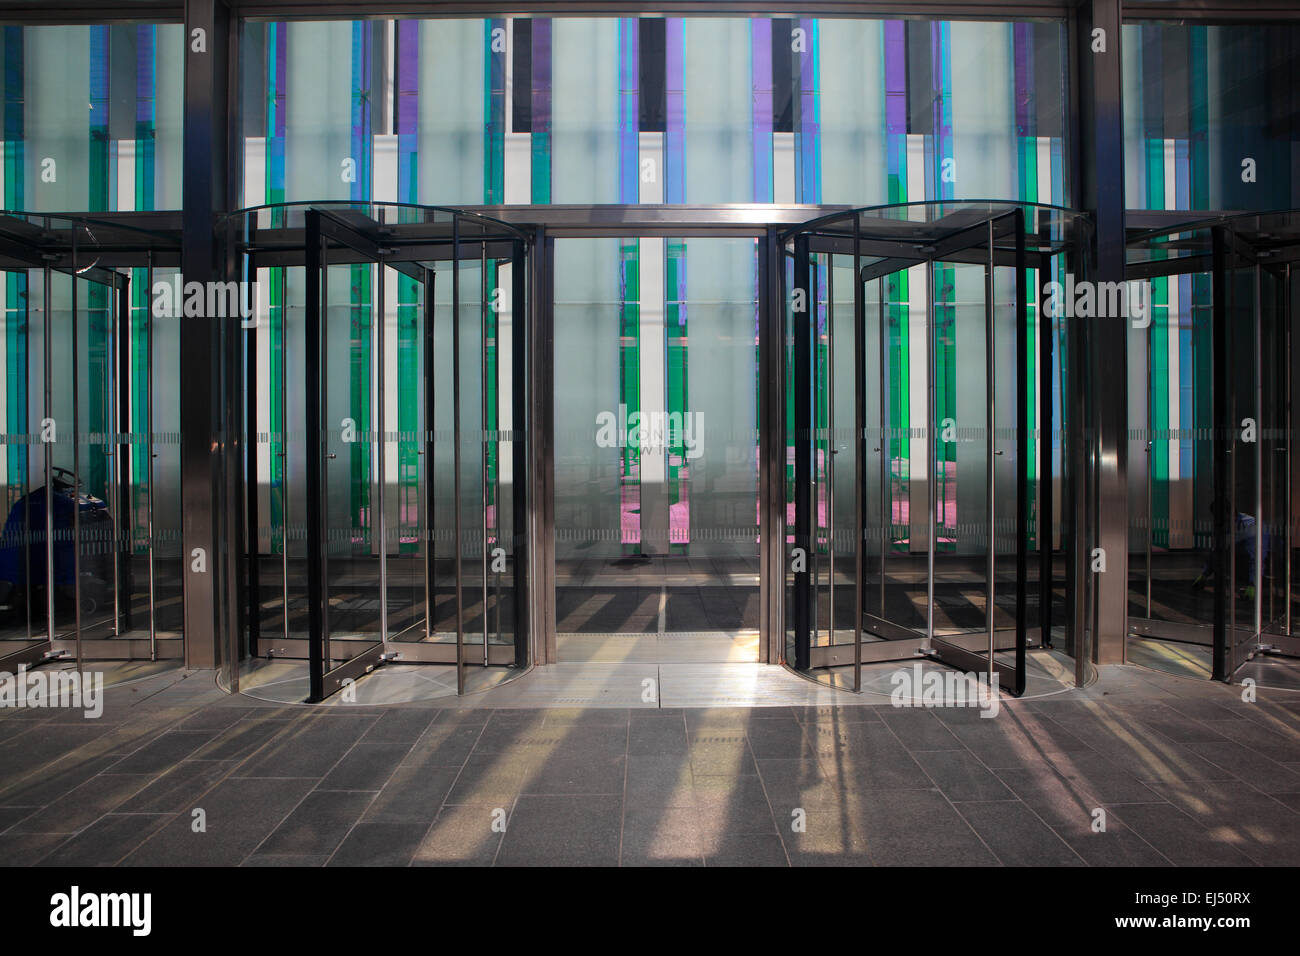 Building Entrance at One World Trade Center in New York City - Stock Image